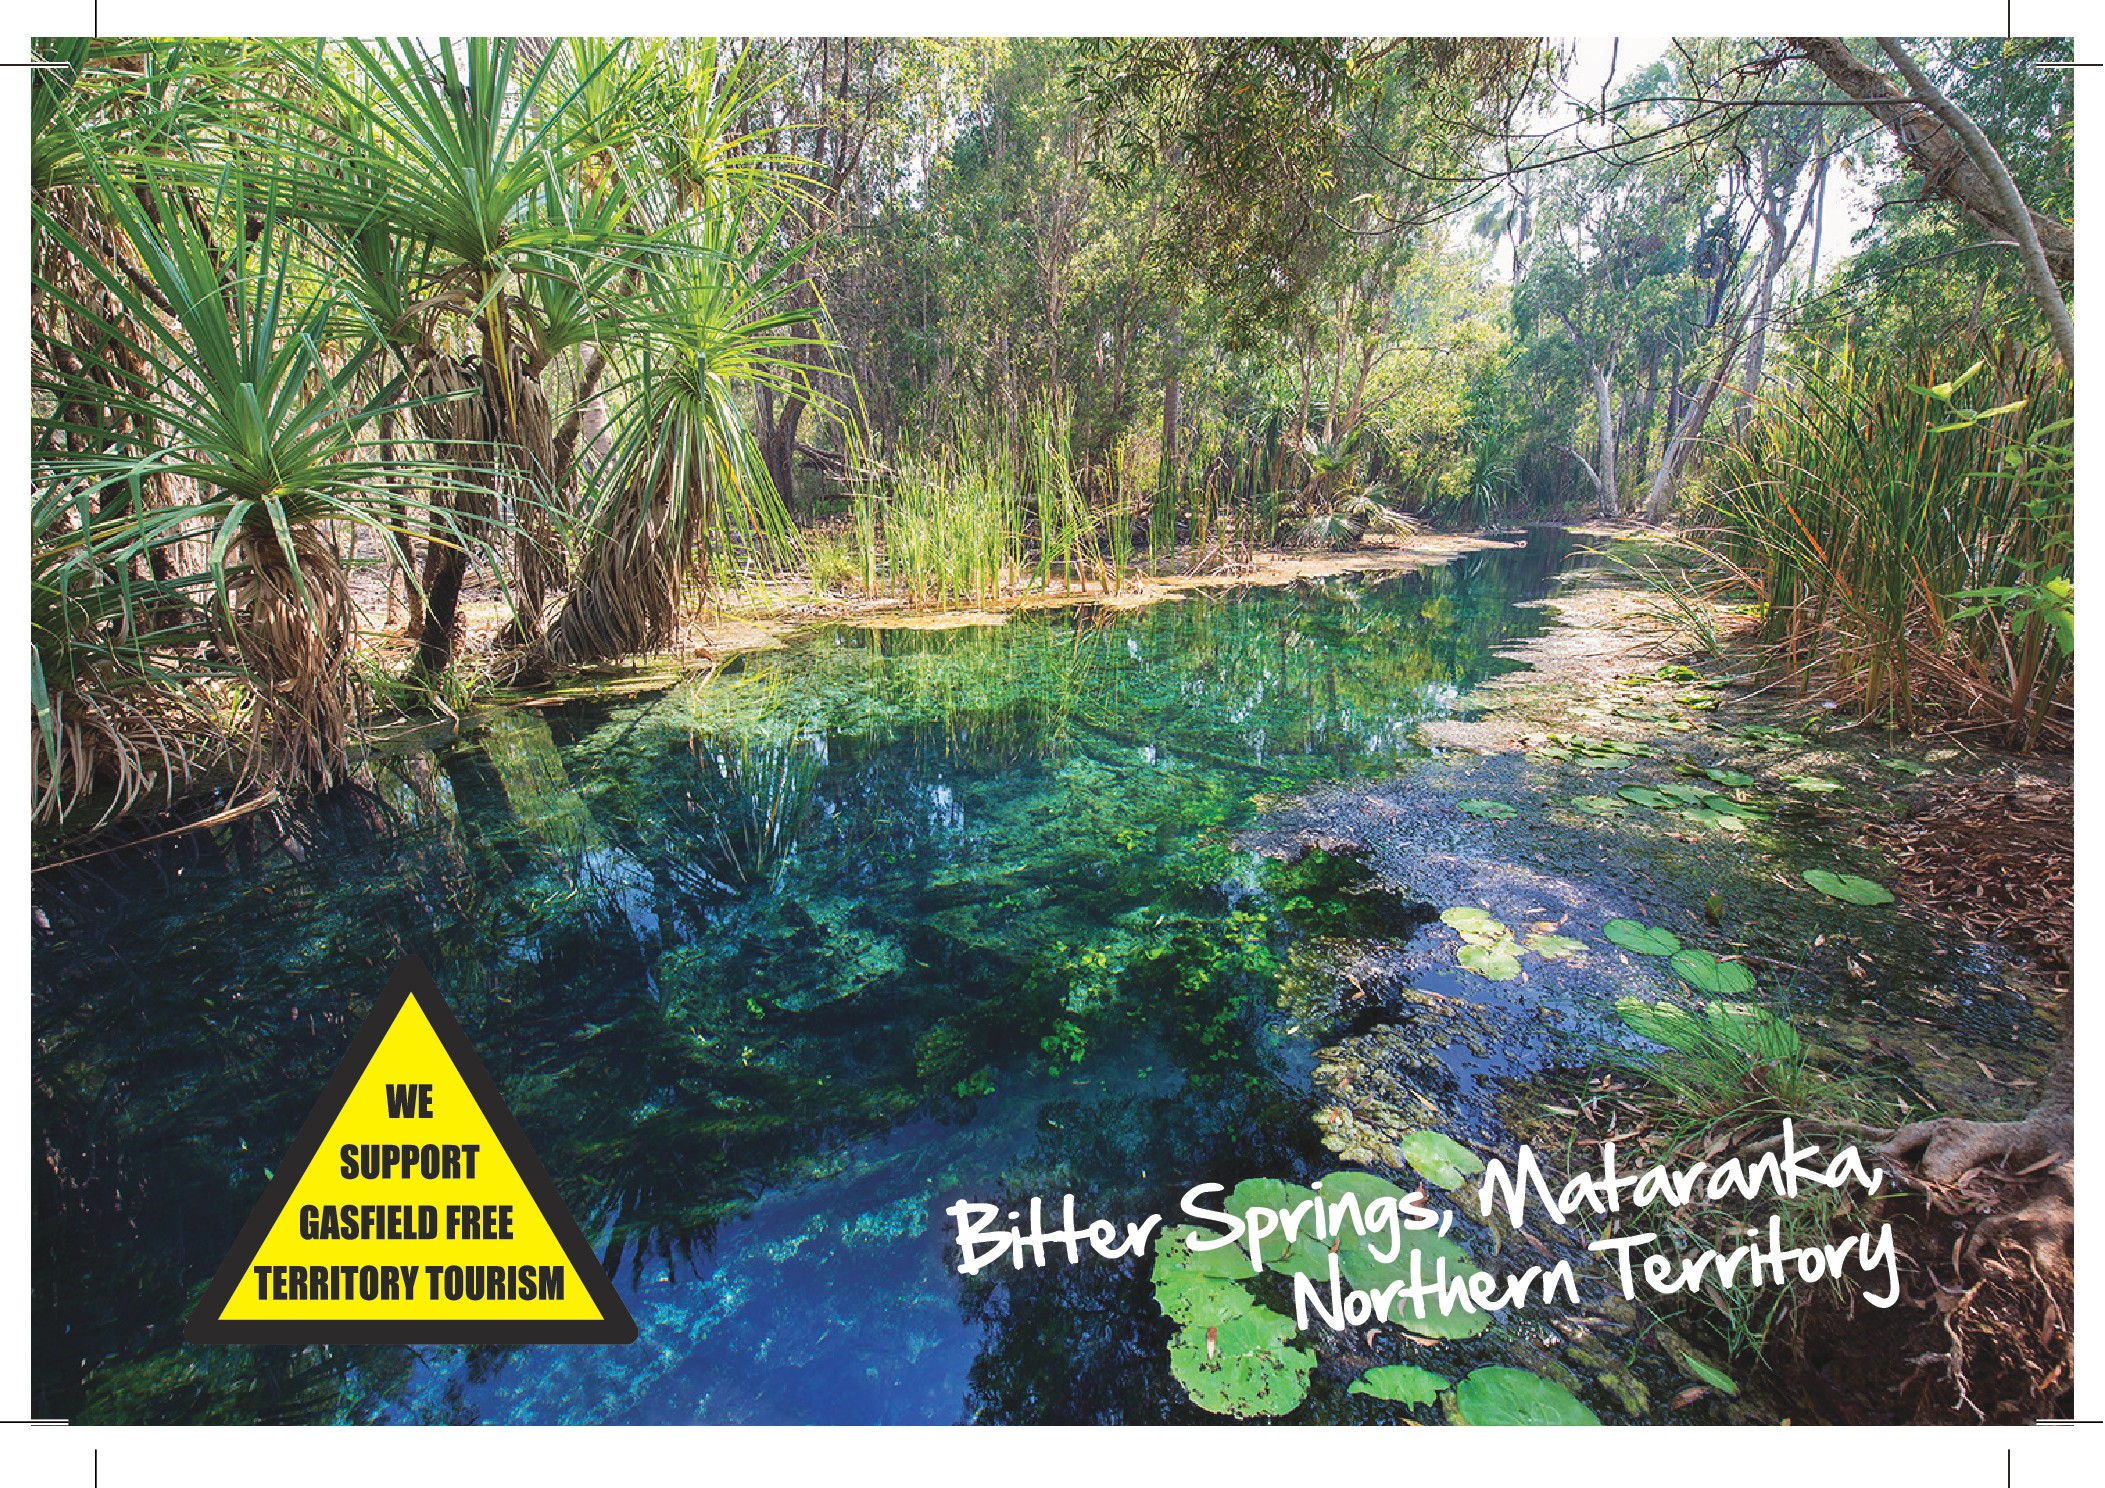 Bitter Springs catchment under threat from fracking gasfields